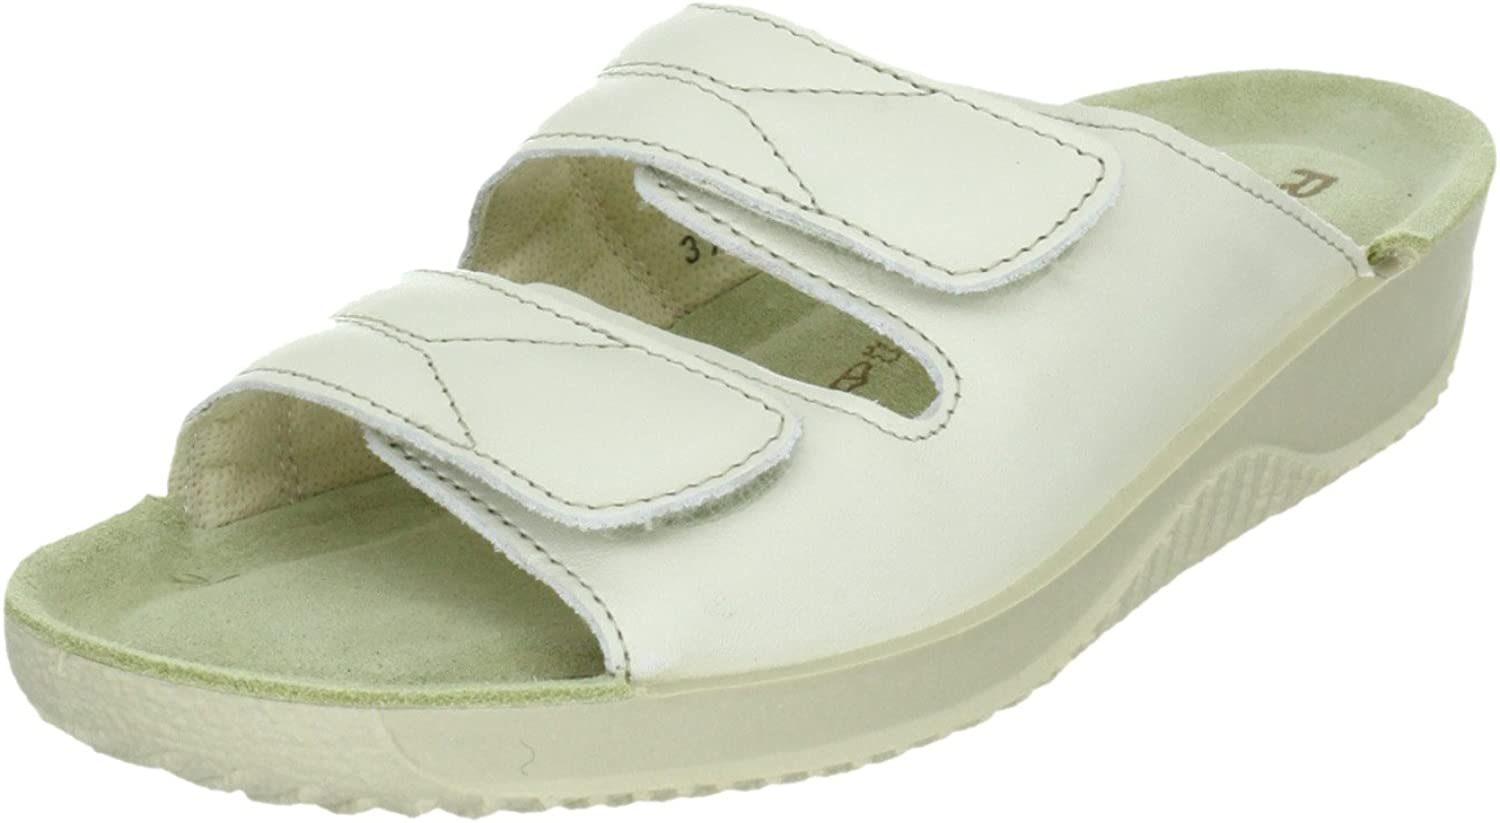 Rohde Womens Soltau-40 Real Leather Mules